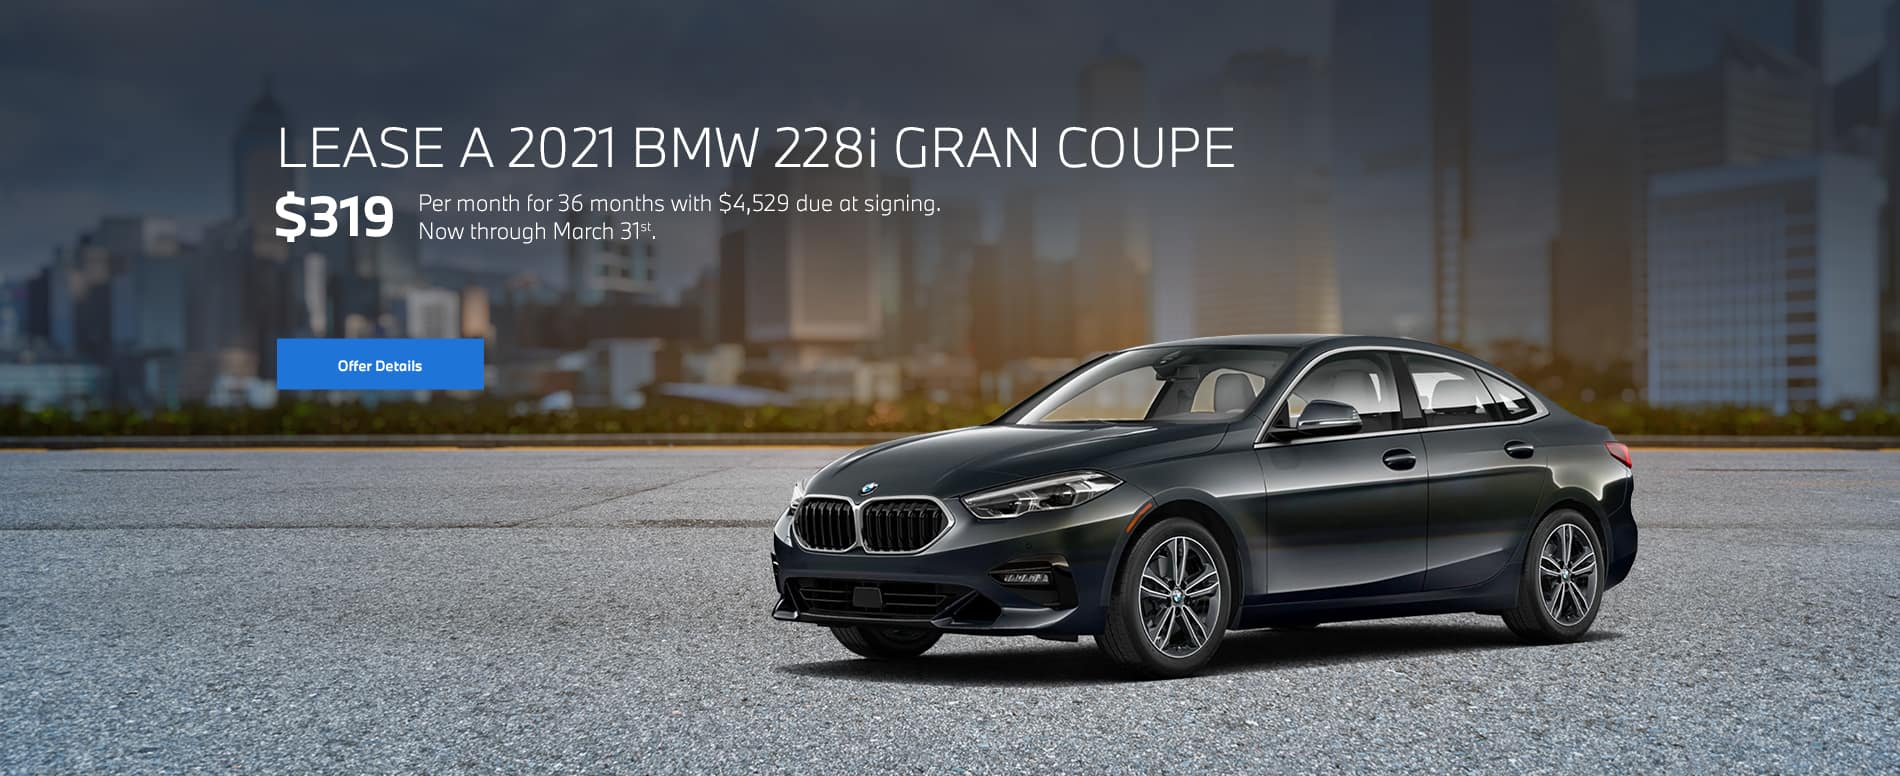 Dark Grey 2 Gran Coupe with cityscape background